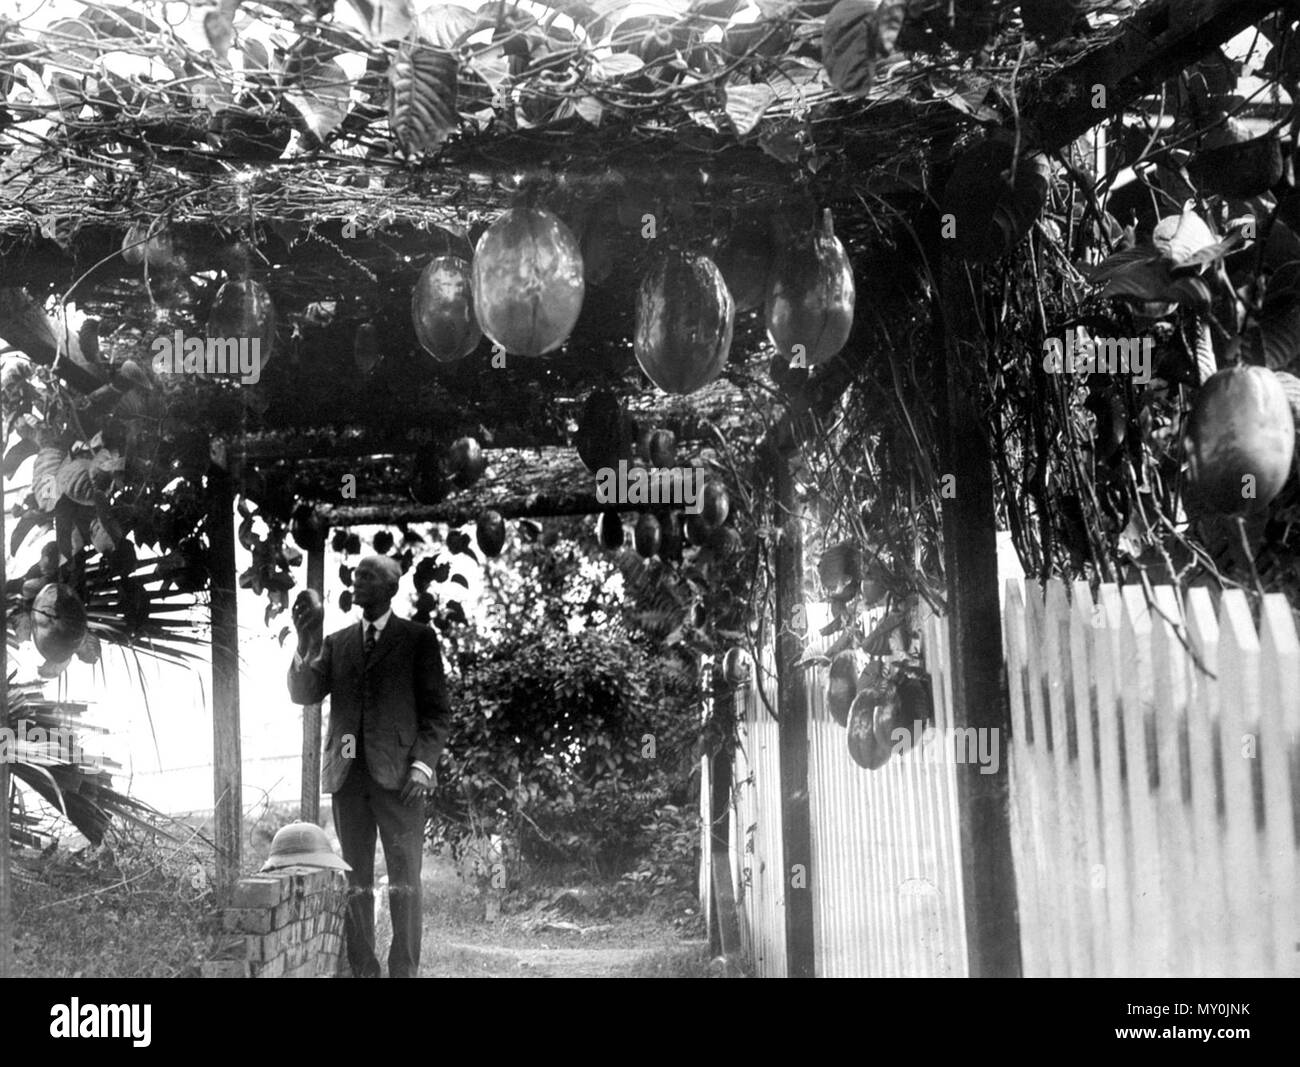 Granadilla Passion Vine, Indooroopilly, 1928. The Brisbane Courier 9 May 1928  A BIG GRANADILLA. 21284970 )   A giant granadilla was brought to the Courier office yesterday by Mr. E. A. Aldridge, who grew it at his home at Stanley-terrace, Taringa. It was 1ft. 11½in. long, and 1ft. 7½in round the sides. The granadilla is a tropical fruit, but Mr. Aldridge says he has no difficulty in growing them in Brisbane, even at this time of the year. He has four vines all of which are good bearers, and a visitor from Cooktown, the home of the granadilla, informed him that they bore the best fruit he had  - Stock Image